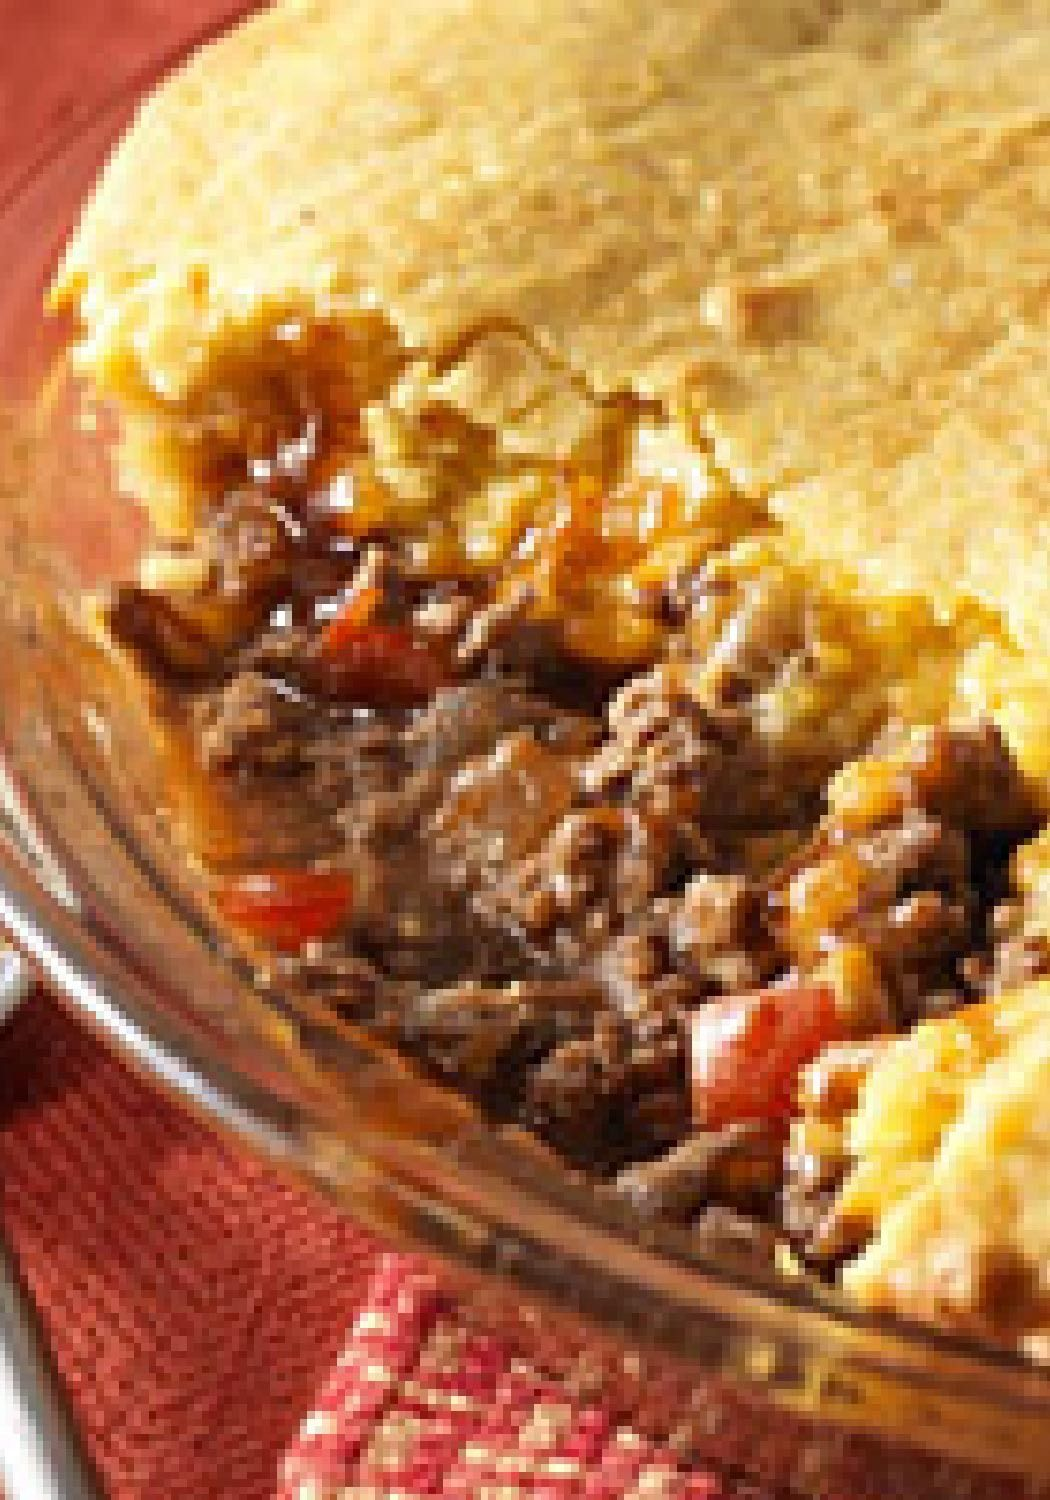 Bbq Beef Cornbread Pie Meet Your Family S New Favorite Meat Pie Made With Ground Beef Cheddar